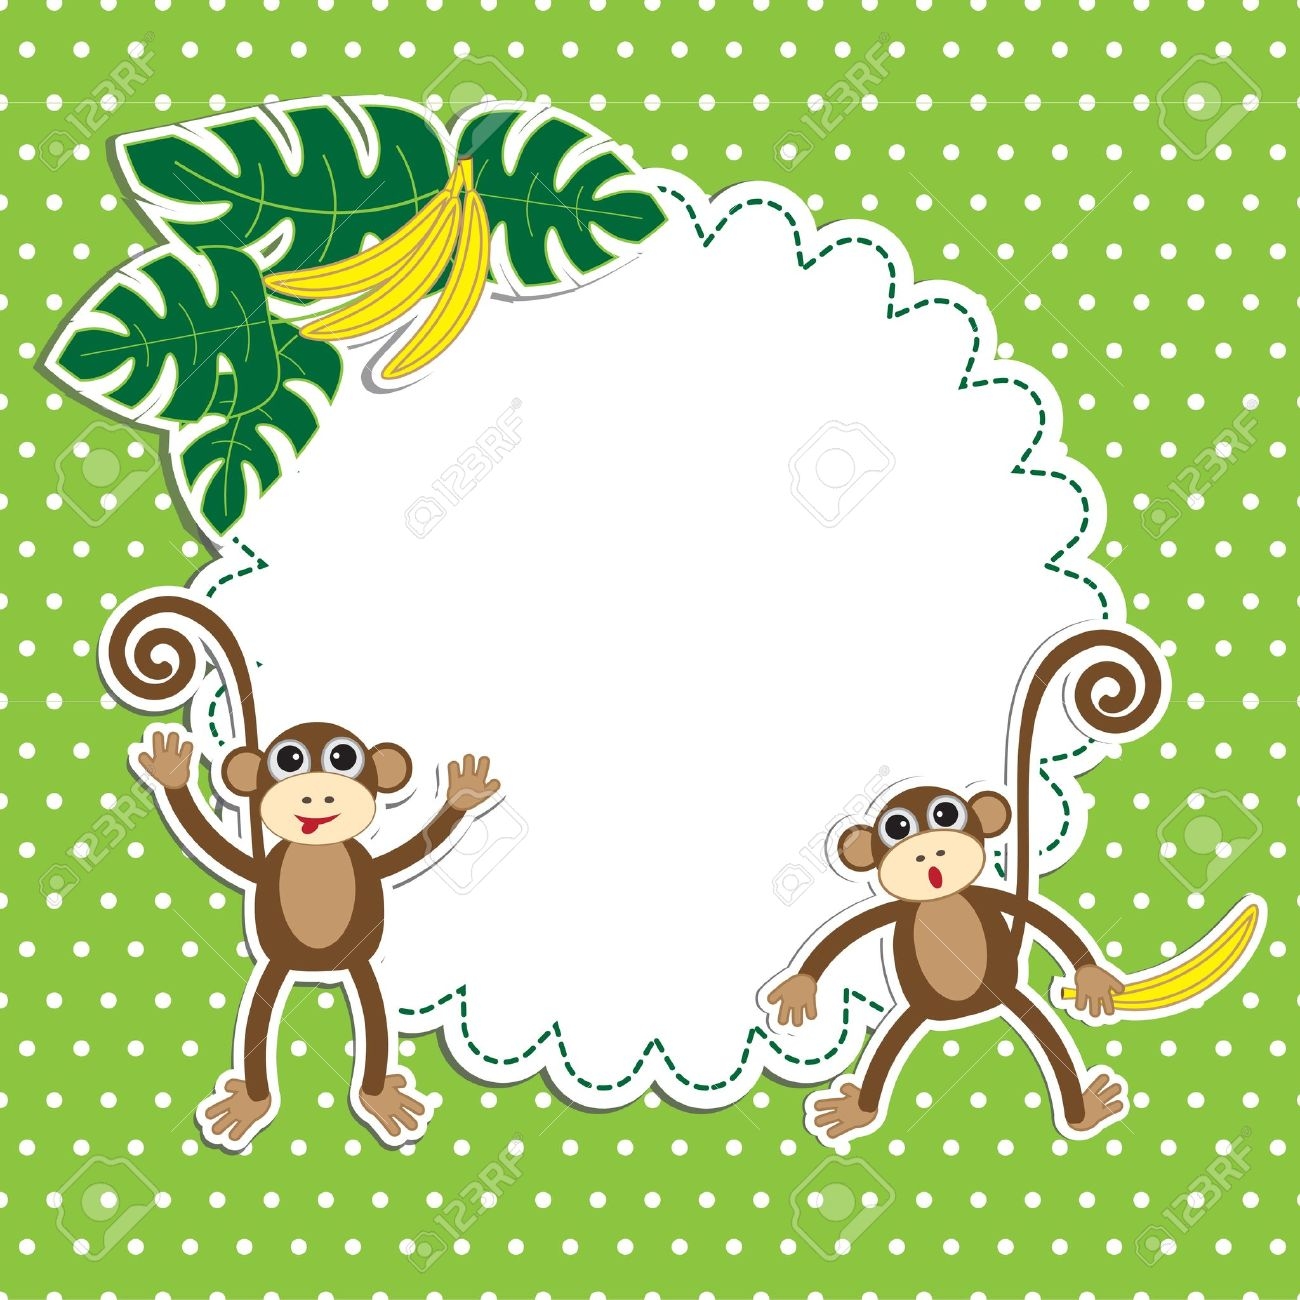 frame with funny monkeys stock vector 15191668 - Monkey Picture Frame